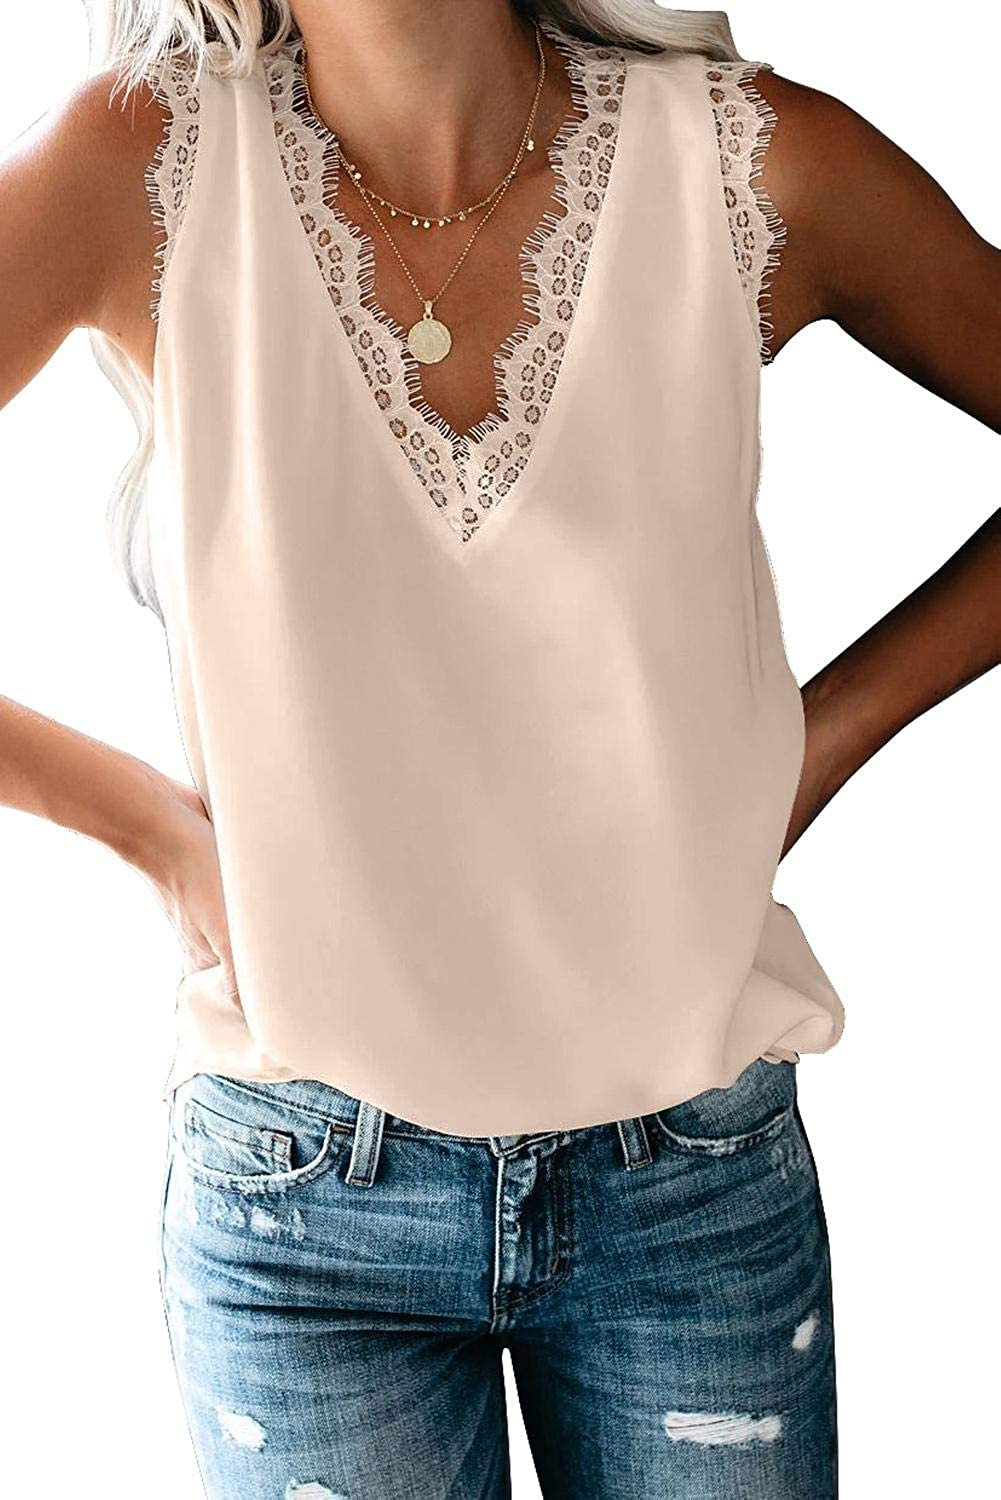 ANFTFH V Neck Lace Tank Chiffon Shirts for Women Flowy Loose Summer Tops